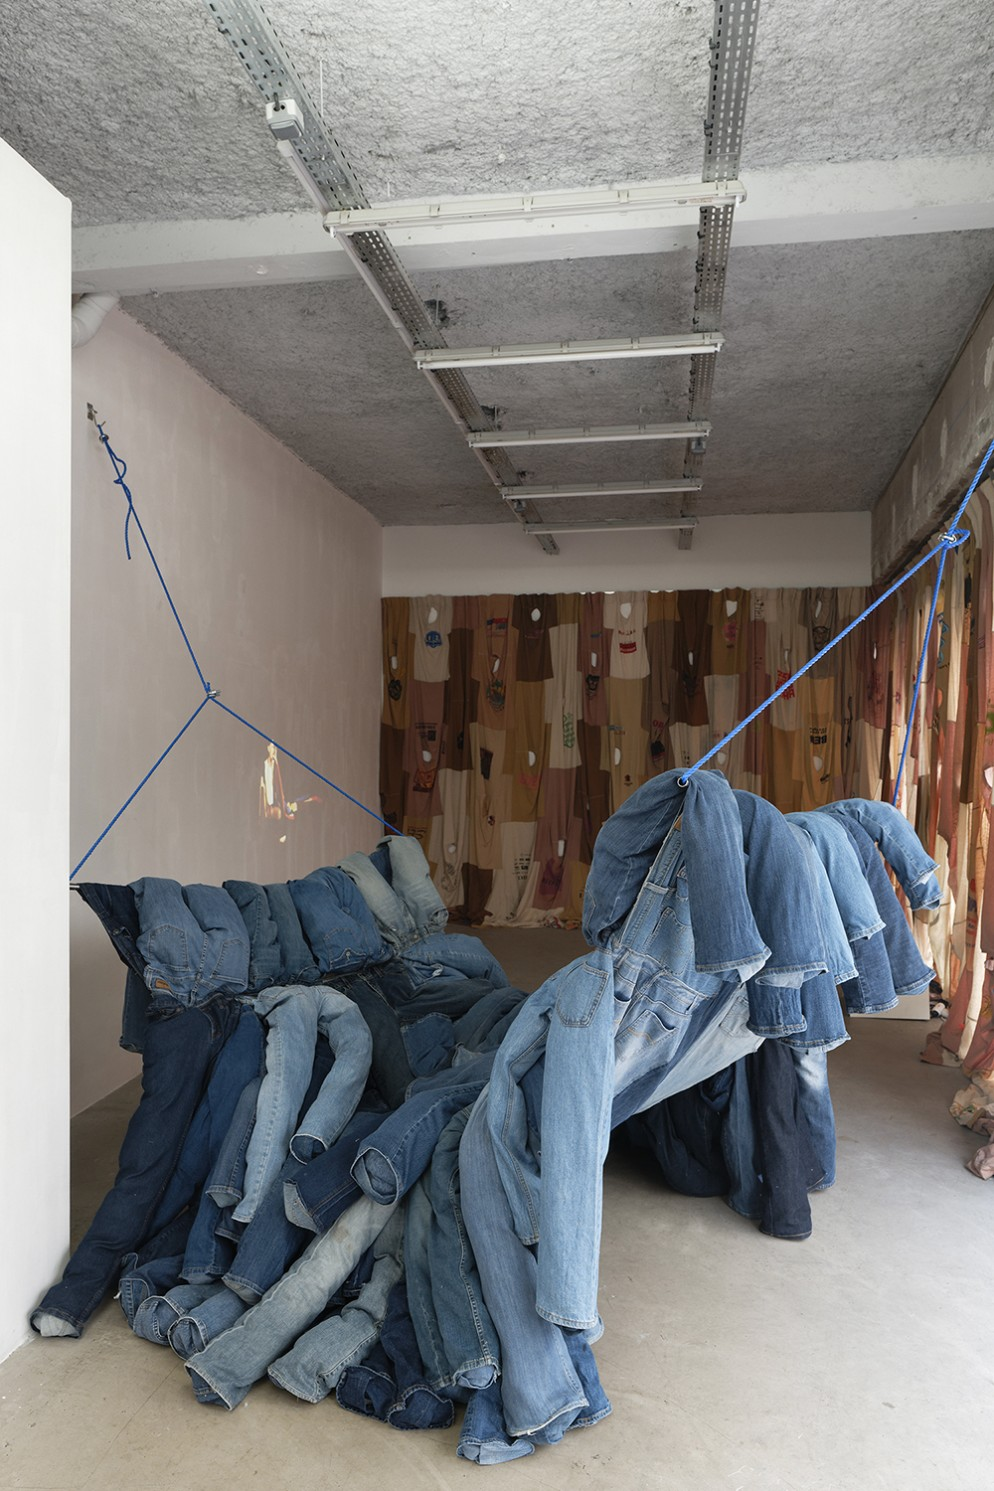 Pia-Camil,-Vicky's-blue-jeans-hammock,-2018.-Exhibition-view-of-the-show-They,-2018,-Galerie-Sultana,-Paris